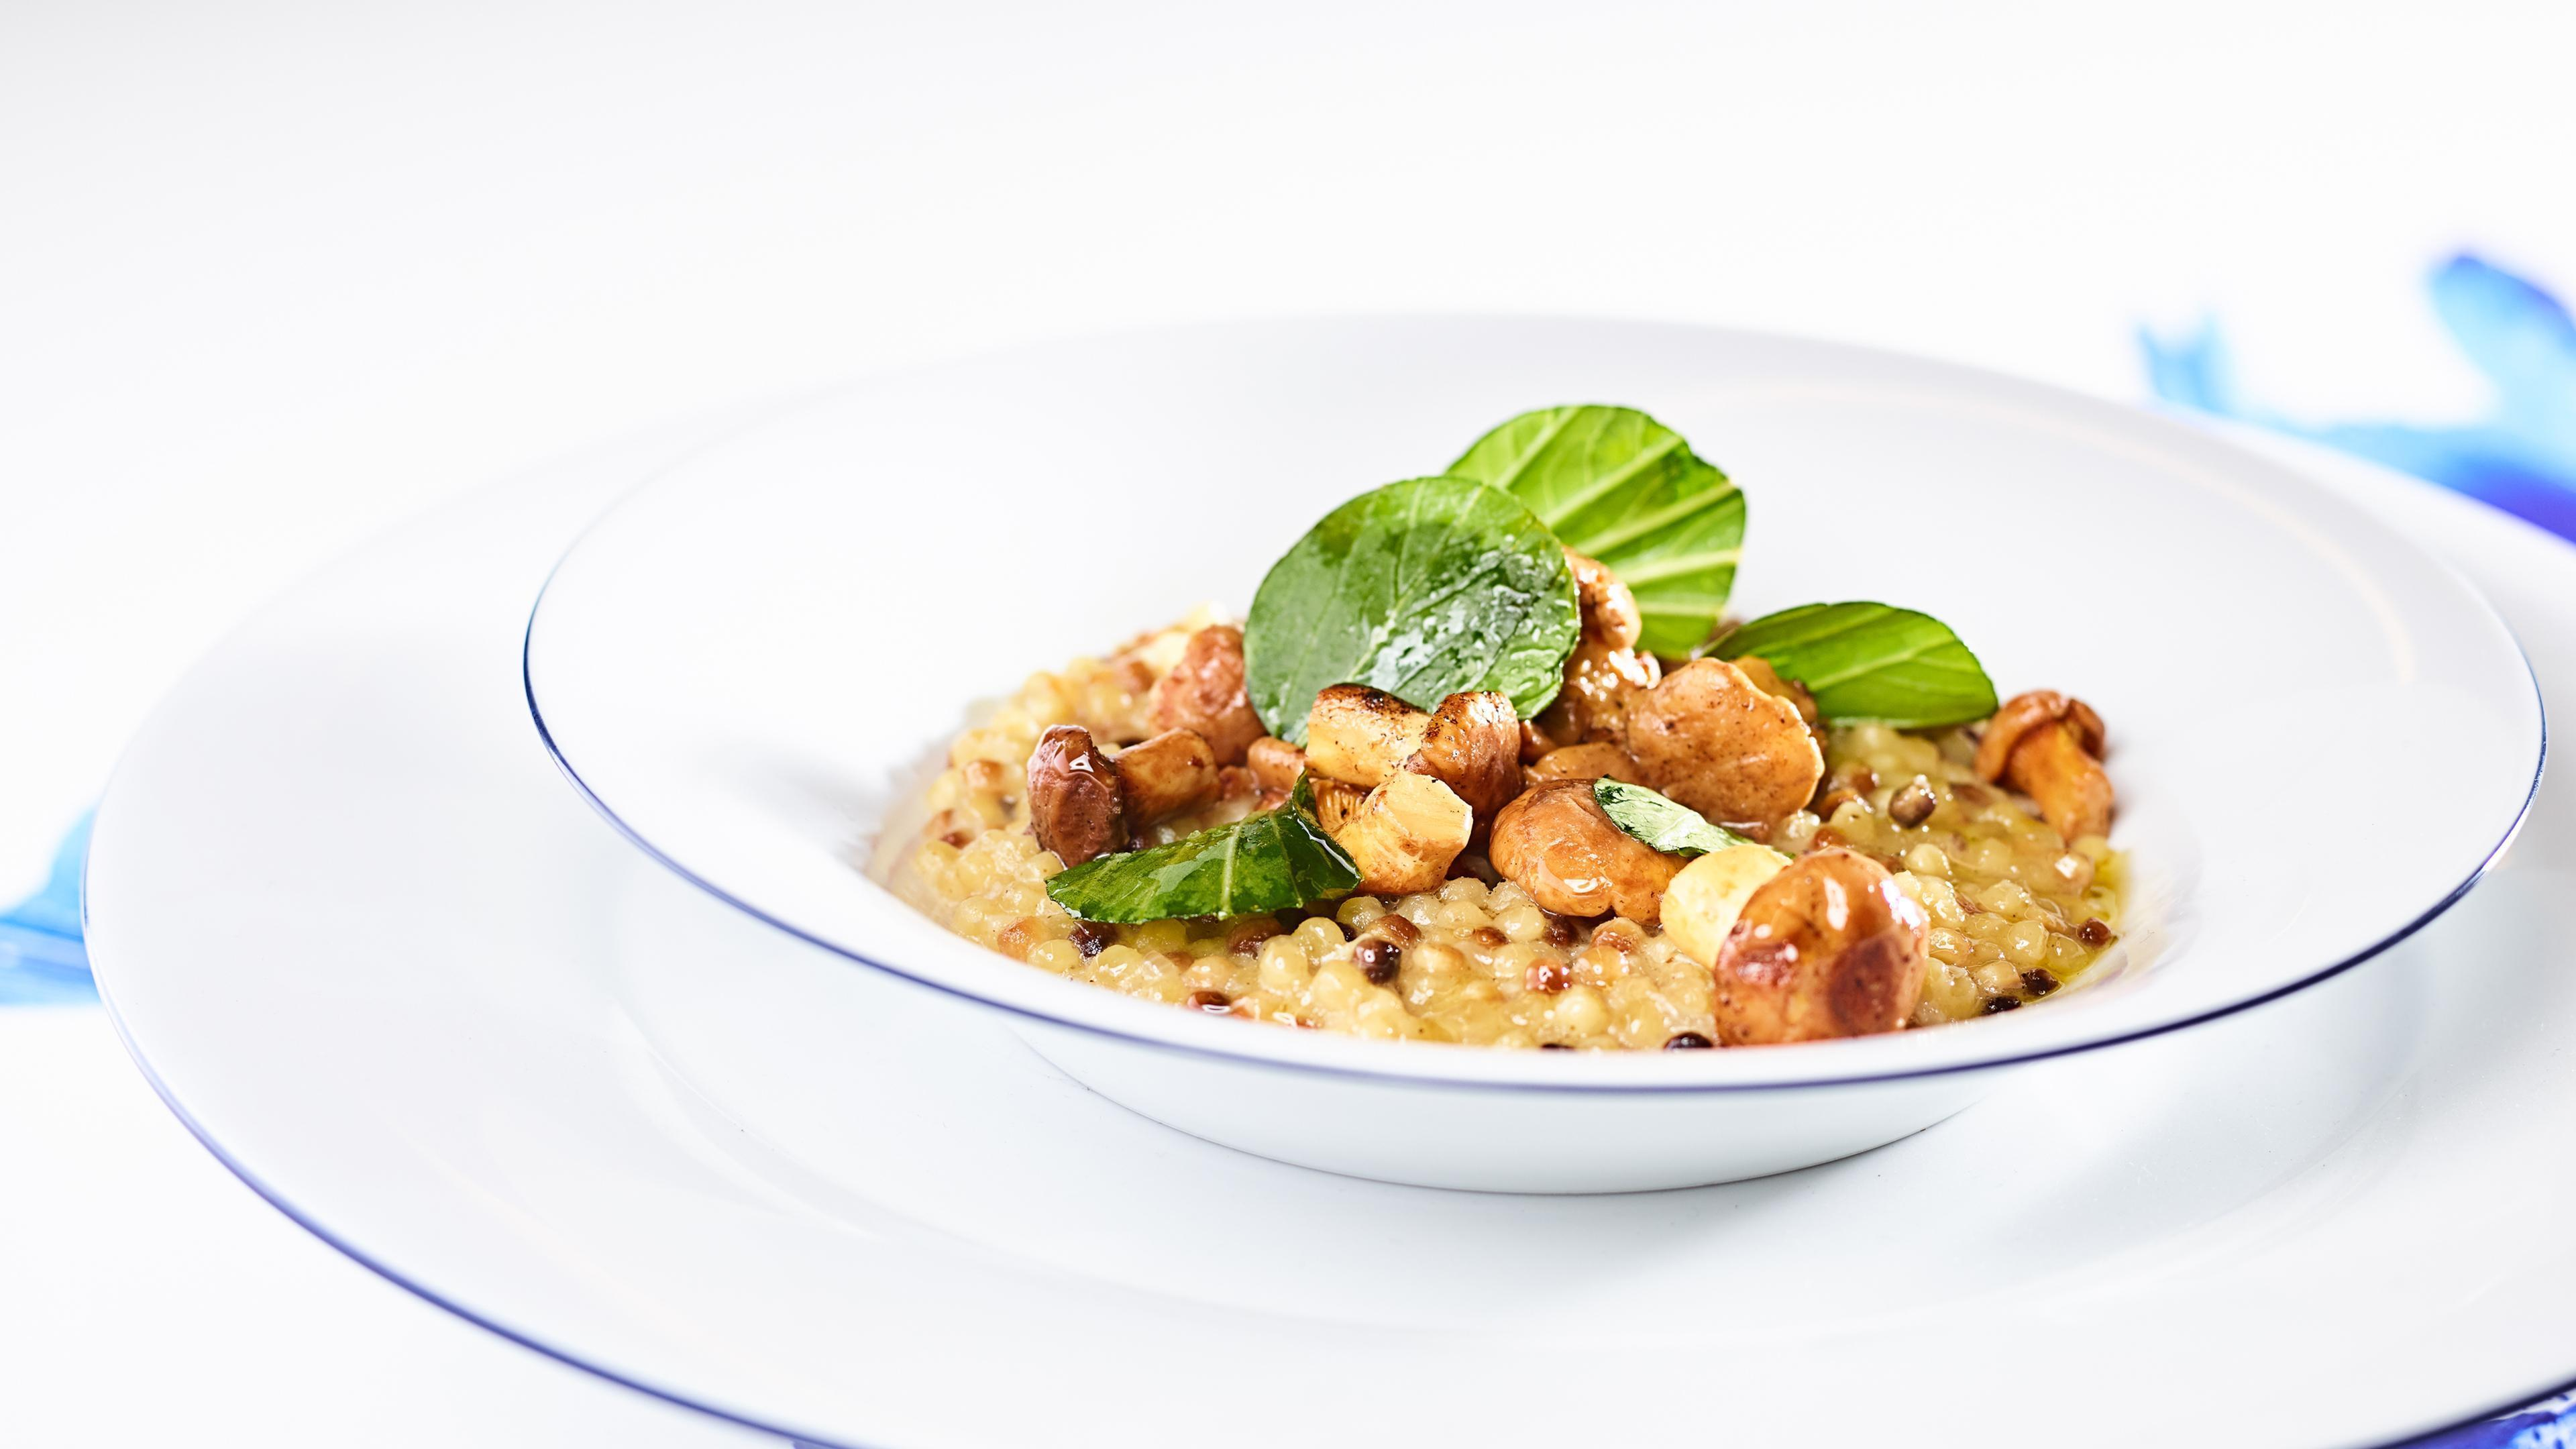 #9 Pastasotto with fresh pak choi and chanterelles